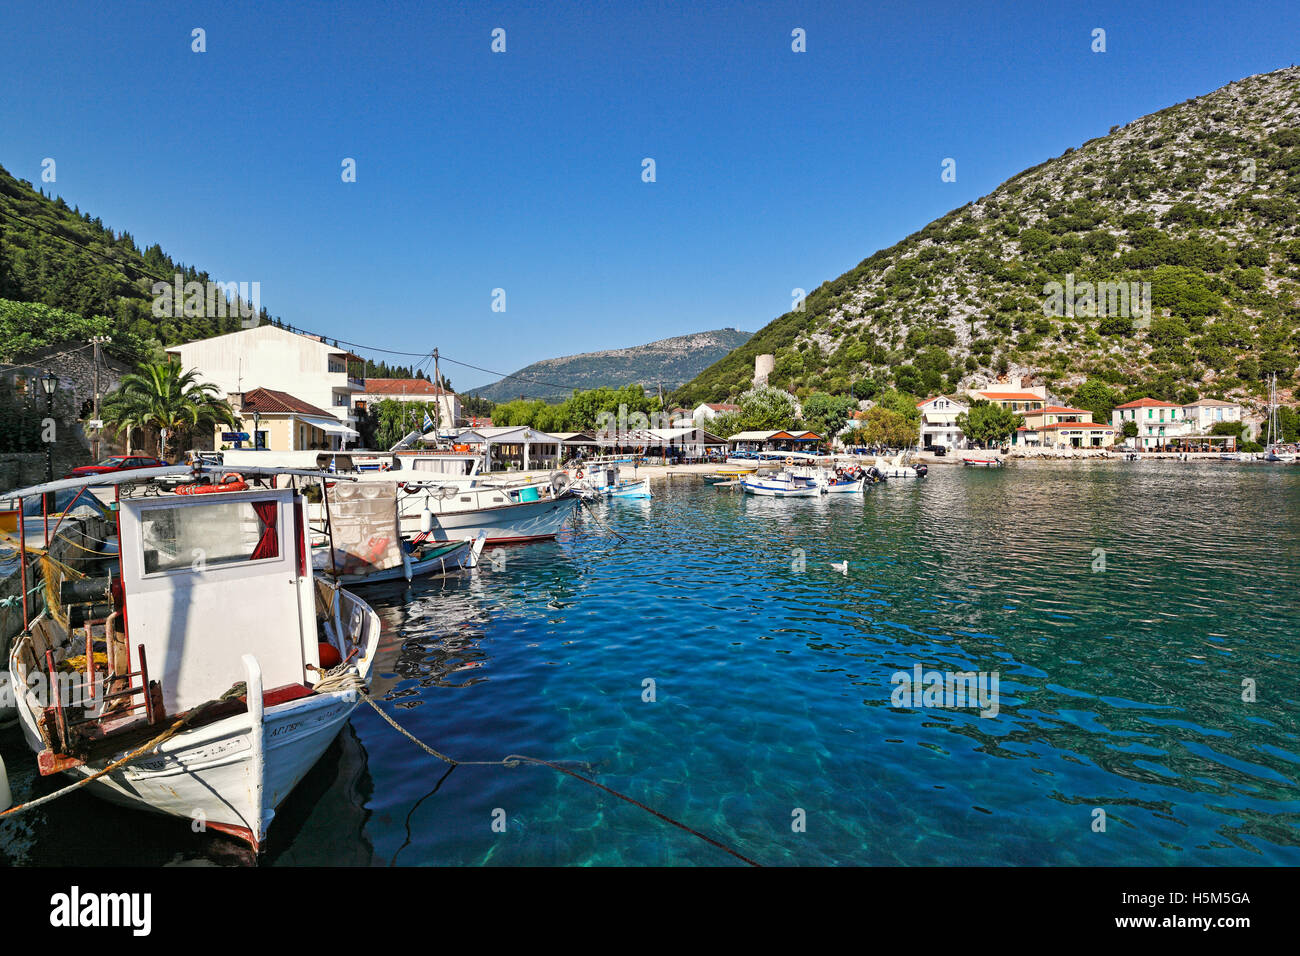 Fishing boats at the port of Frikes in Ithaki island, Greece - Stock Image